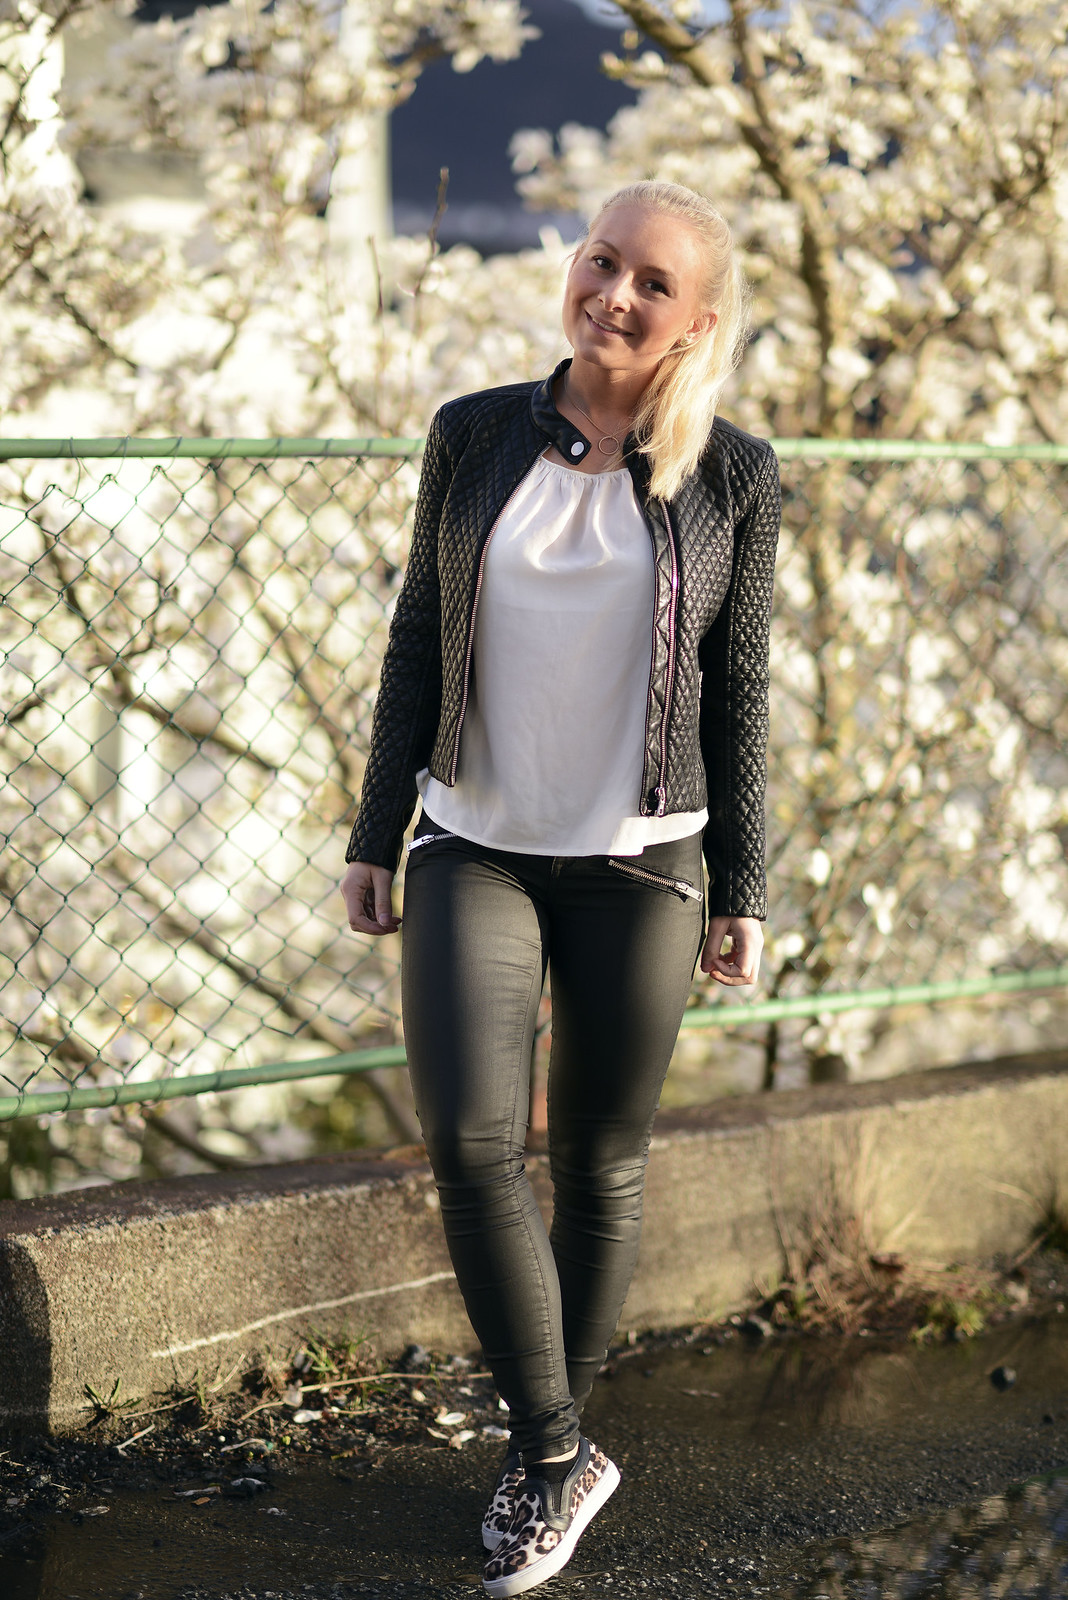 26apr.2015_Outfit_540611